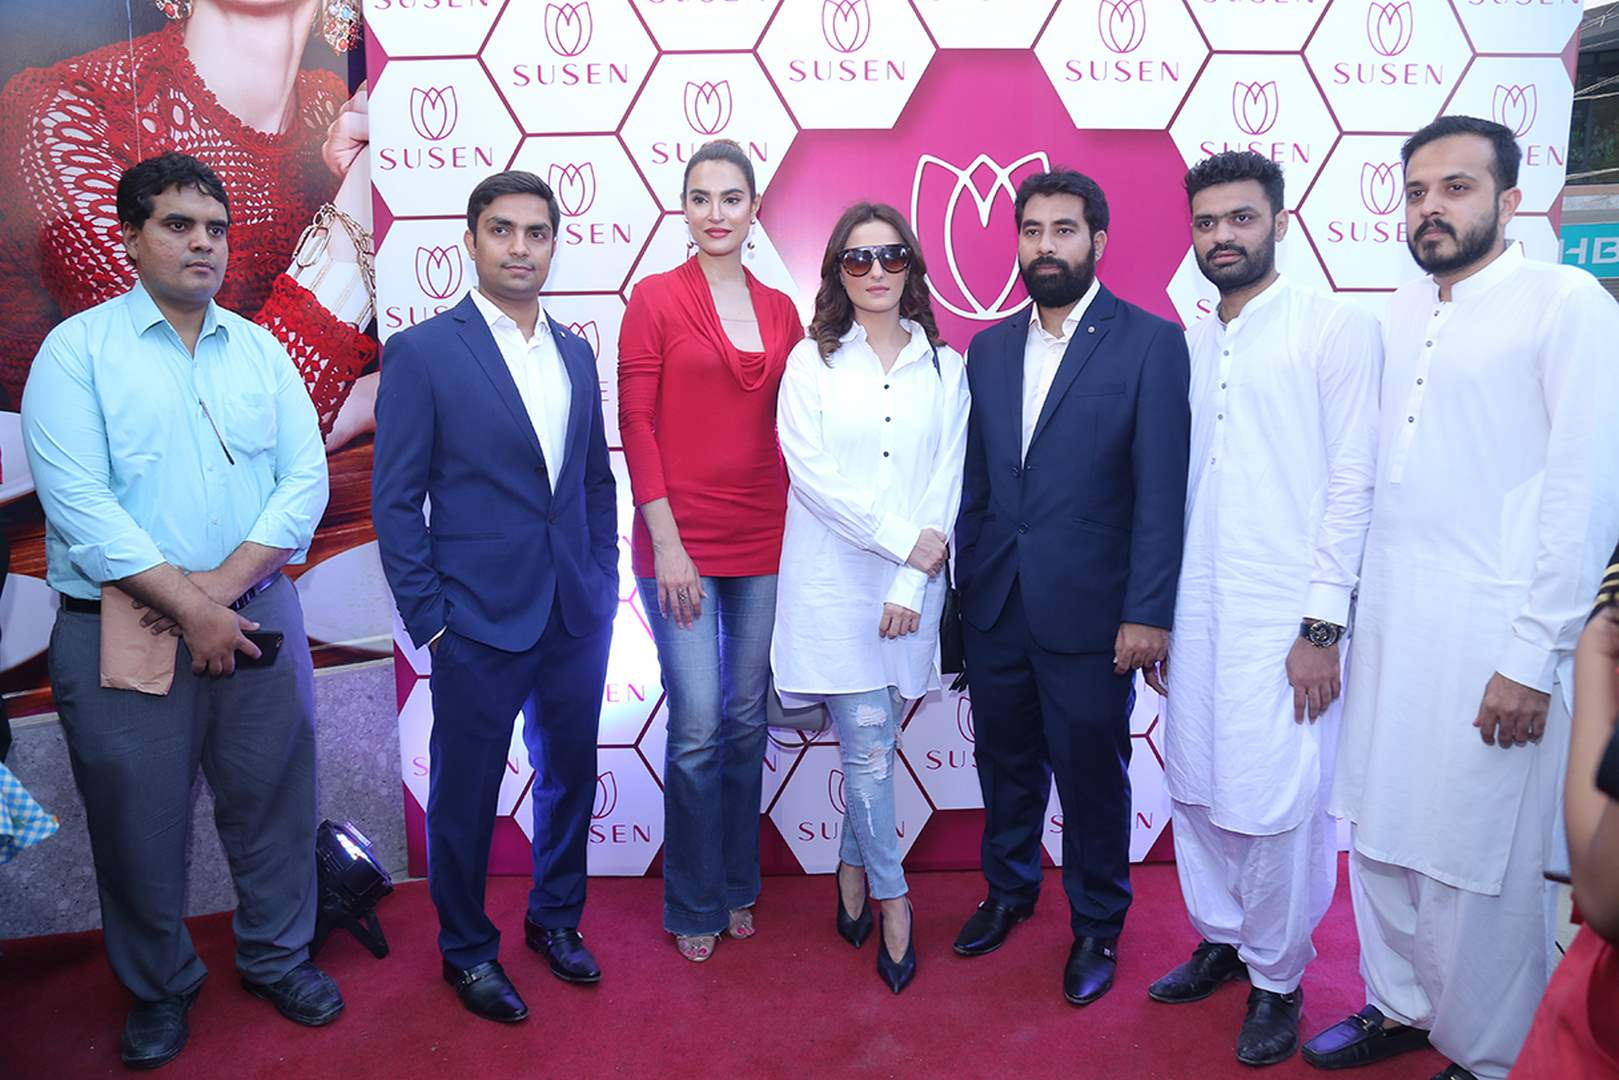 Momal Sheikh and Nadia Hussain along with others graced the red carpet